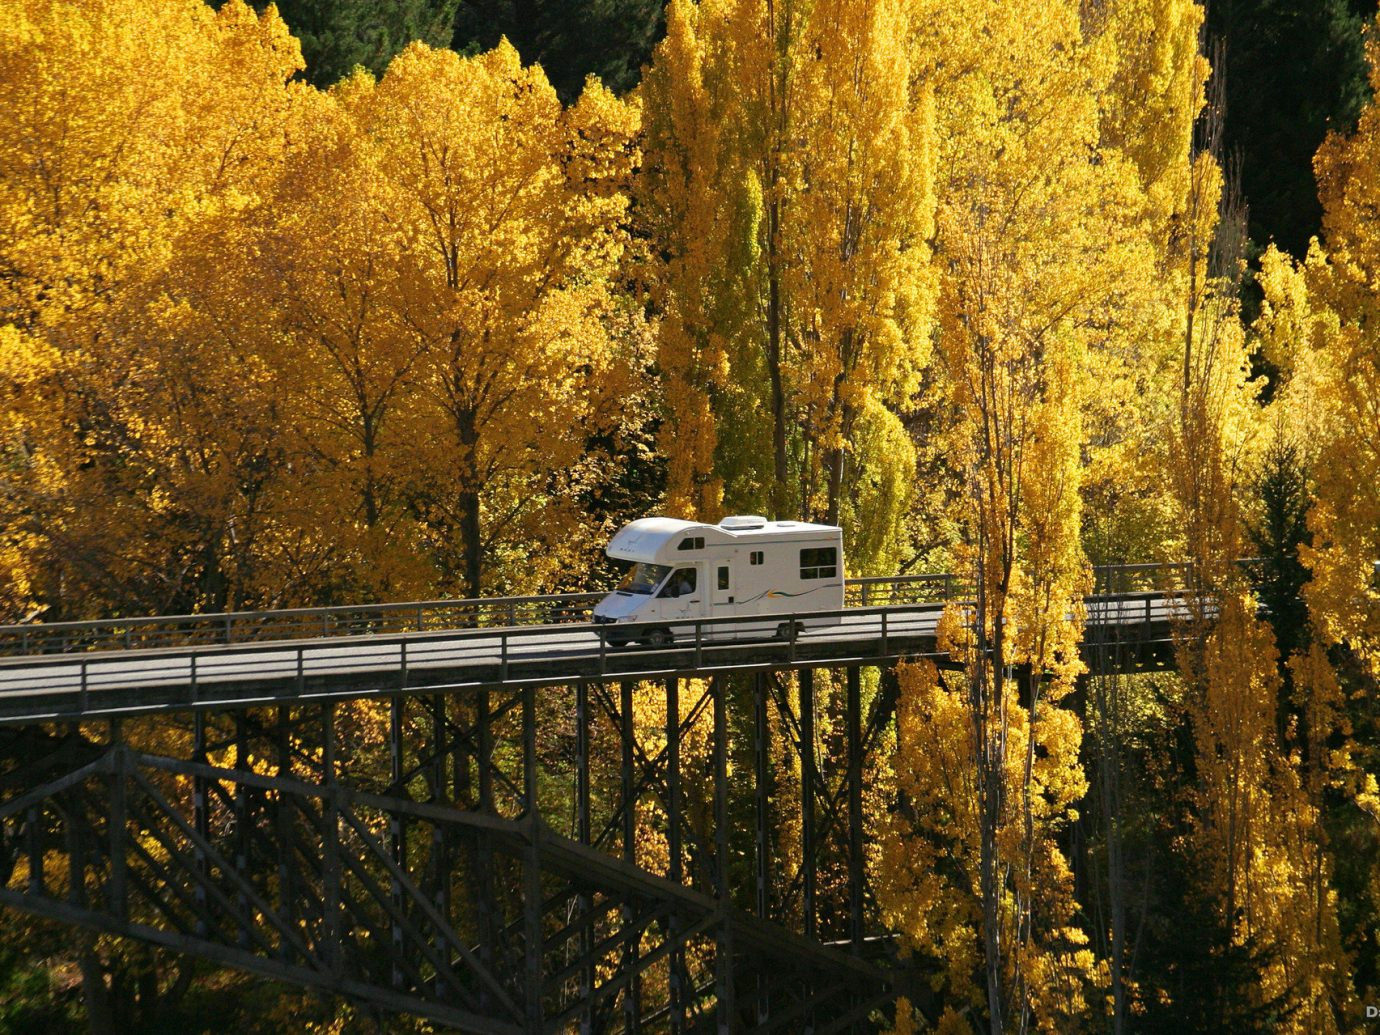 autumn bridge calm caravan Fall Forest Nature Oceania remote Roads roadtrip serene trees Trip Ideas tree outdoor habitat wilderness reflection season natural environment leaf plant morning poplar woody plant sunlight park woodland branch landscape evening wooded